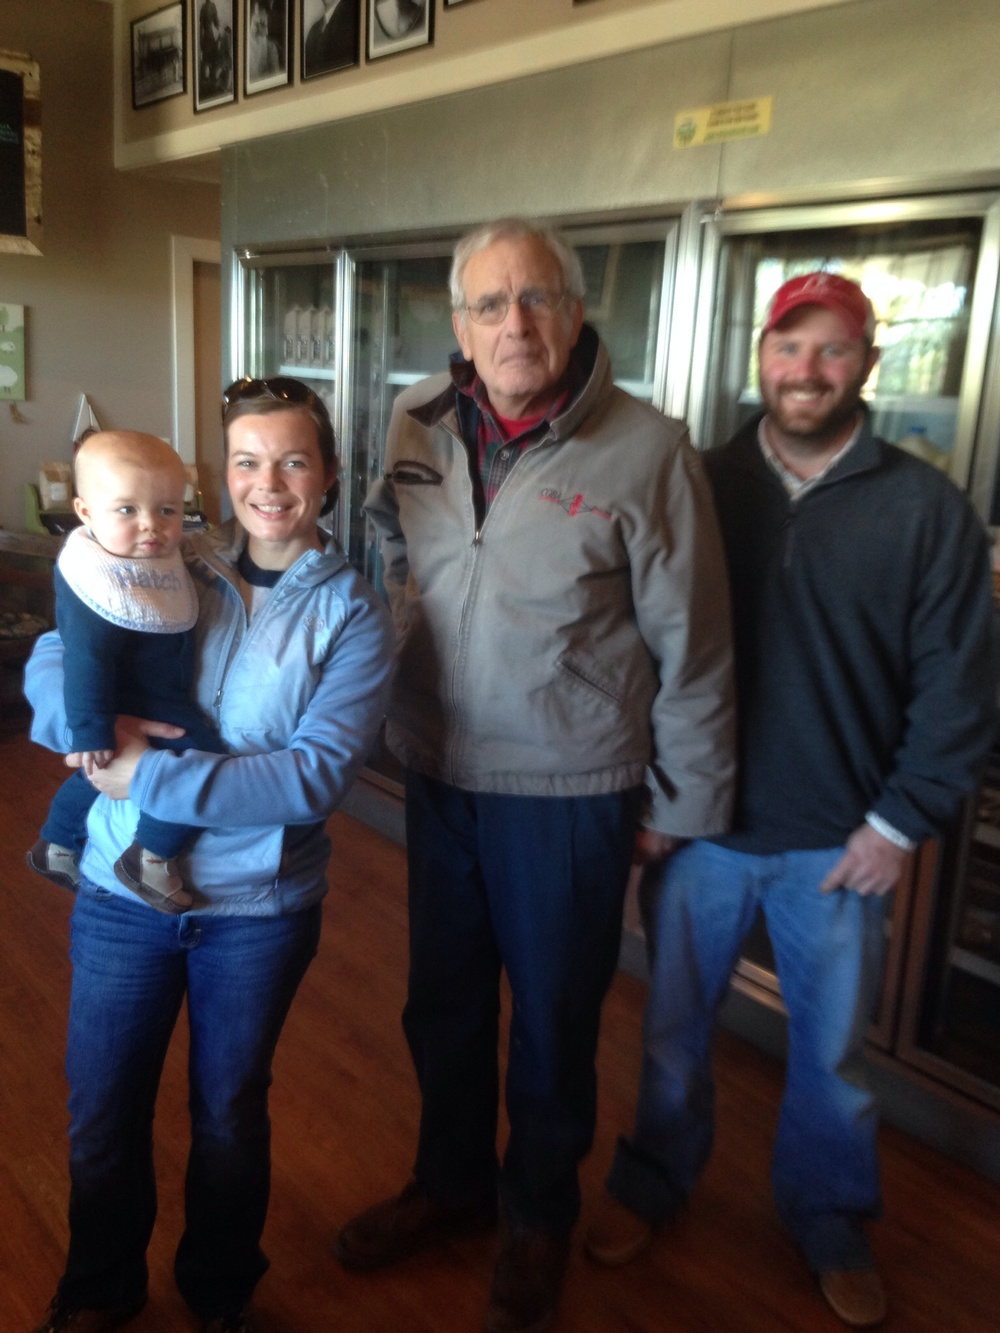 Dr britt has influenced many students: he is pictured here with  Jennifer Hatcher  and  John Laster . Dr. Jennifer also holding Hatcher, her first son and future veterinarian.